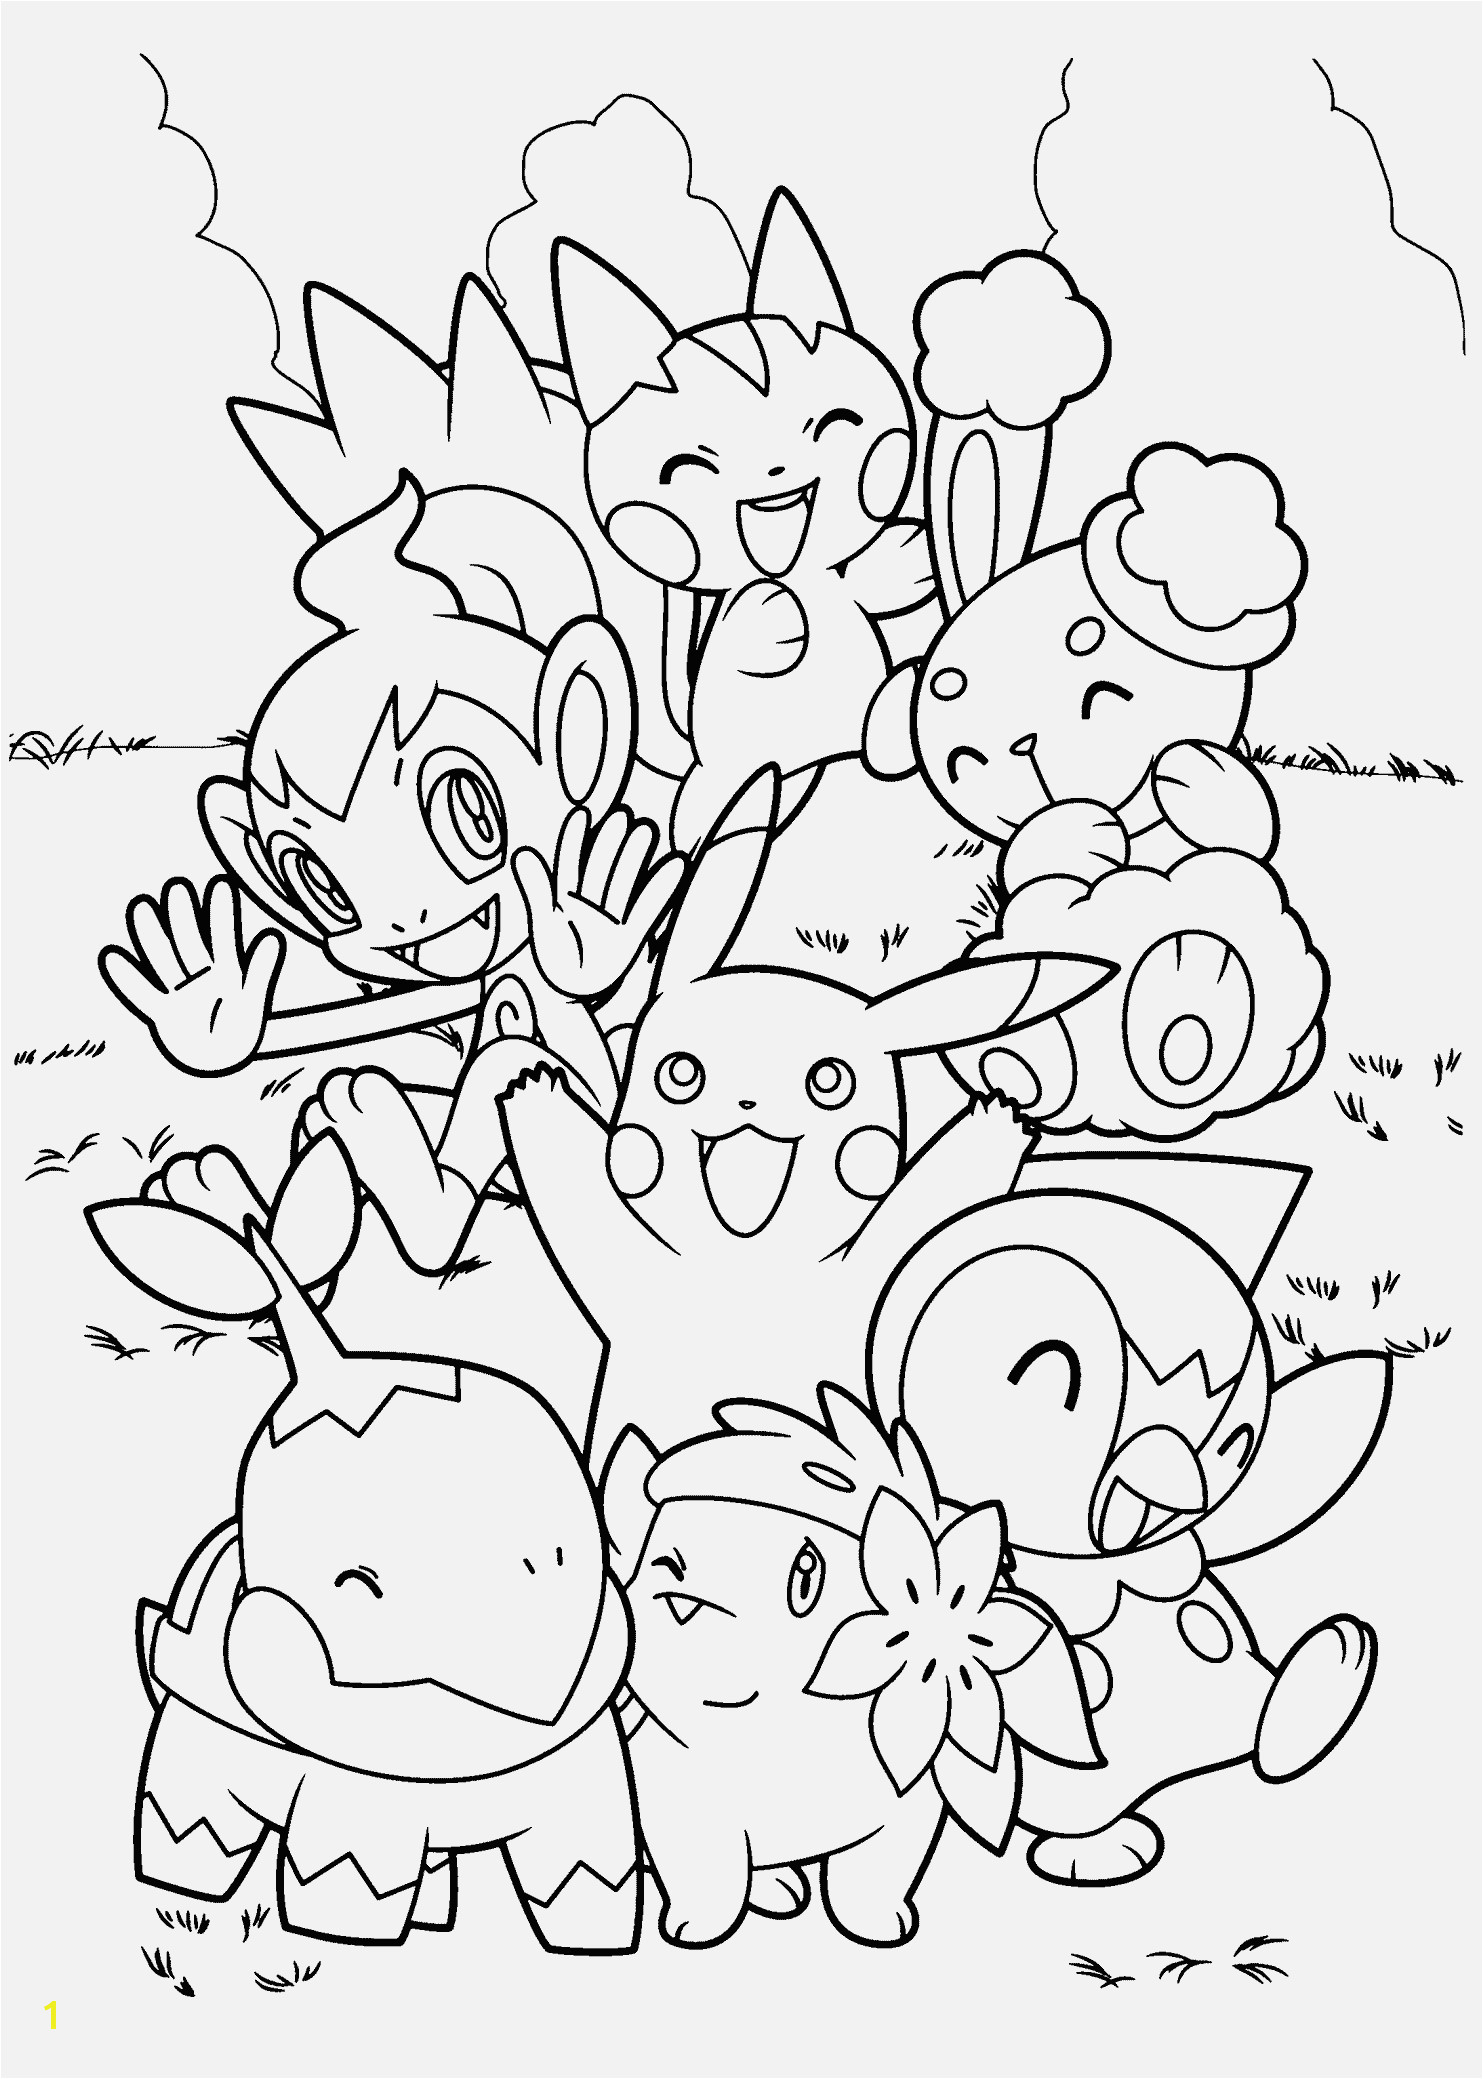 Pokemon Ball Coloring Page Pokemon Card Coloring Pages Amazing Advantages Coloring Pages Dogs